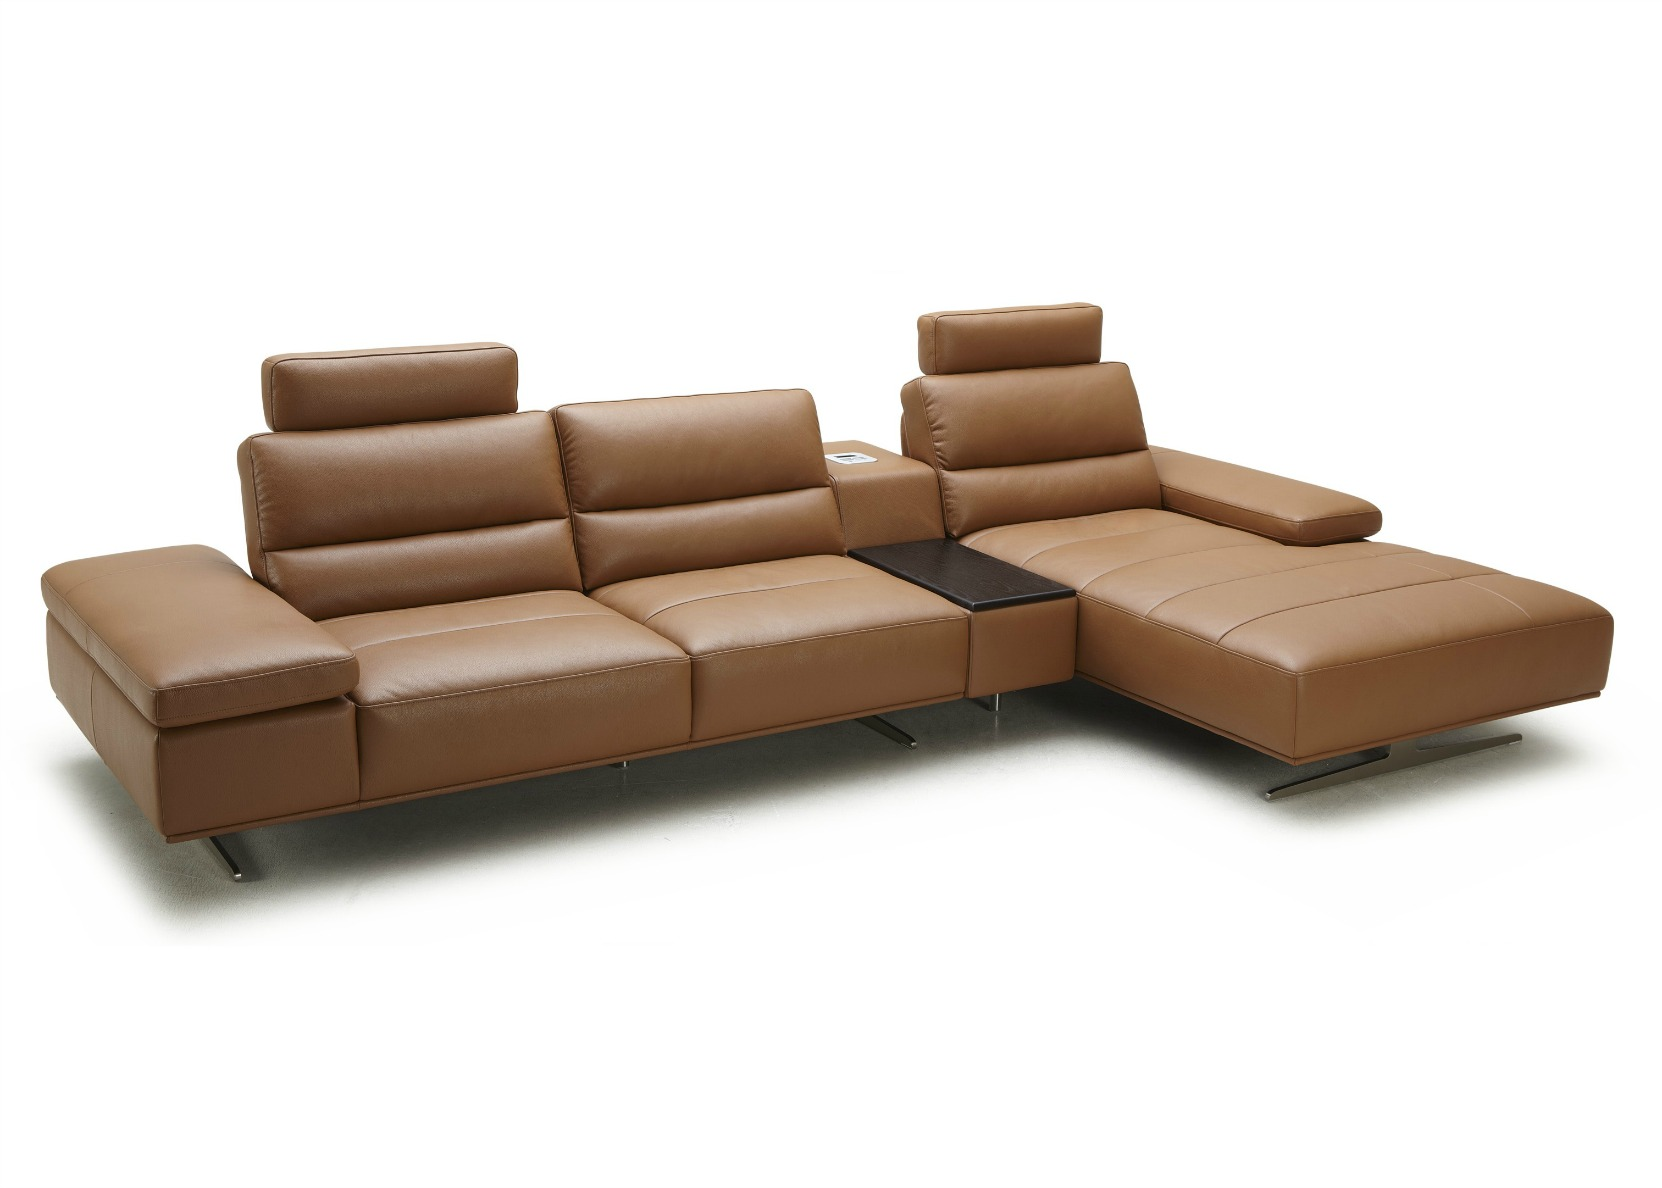 Lounge Sofa With Sliding Back Rest Not Just Brown